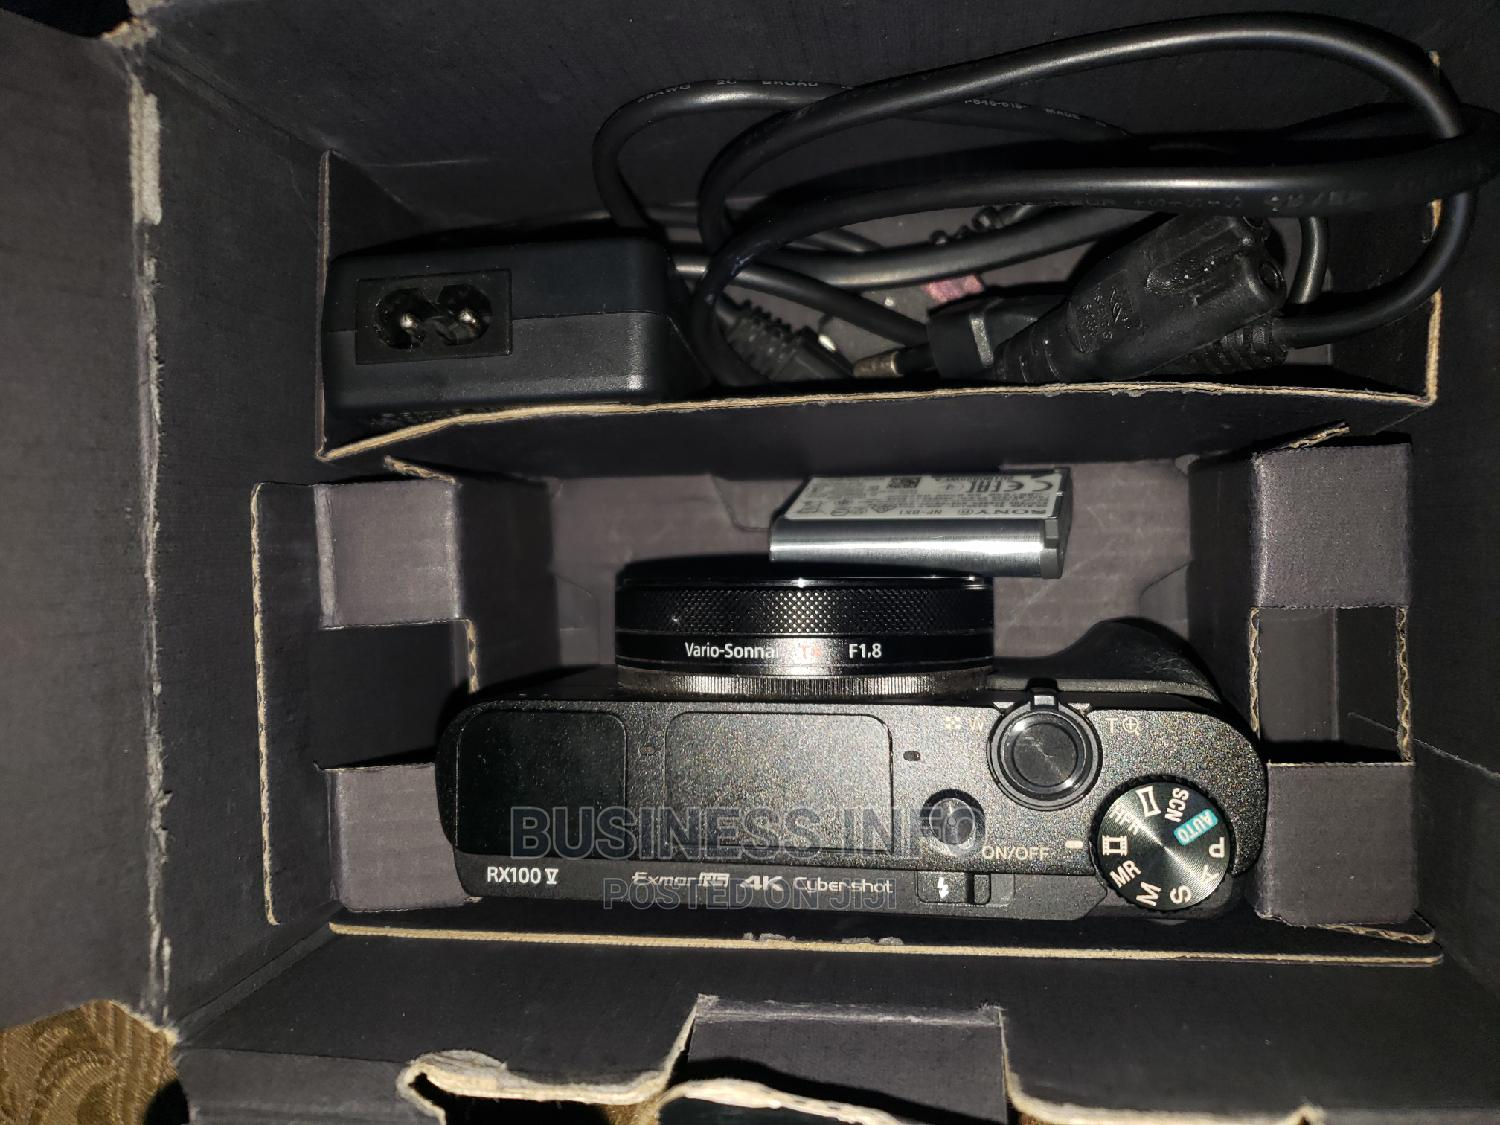 Sony Rx 100 Mark v | 4k at 24fps, 30fps | Photo & Video Cameras for sale in Aba North, Abia State, Nigeria